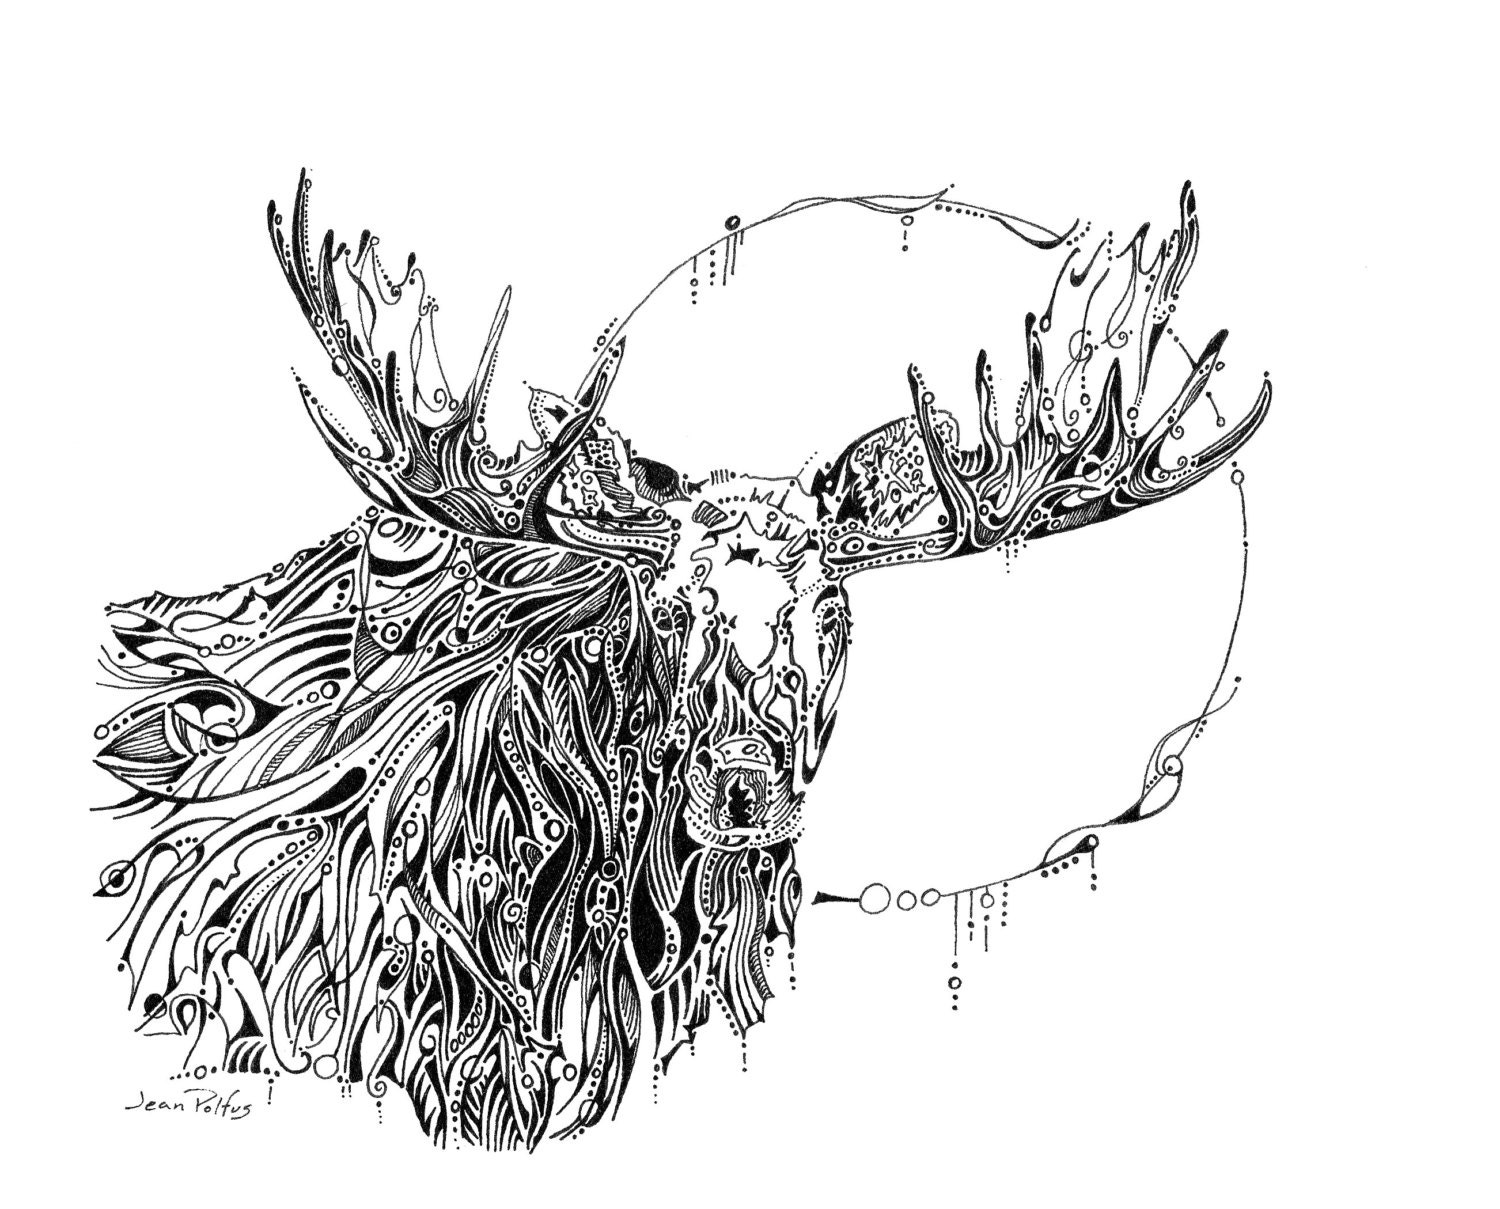 Line Drawings Of Woodland Animals : Moon moose drawing bull illustration woodland